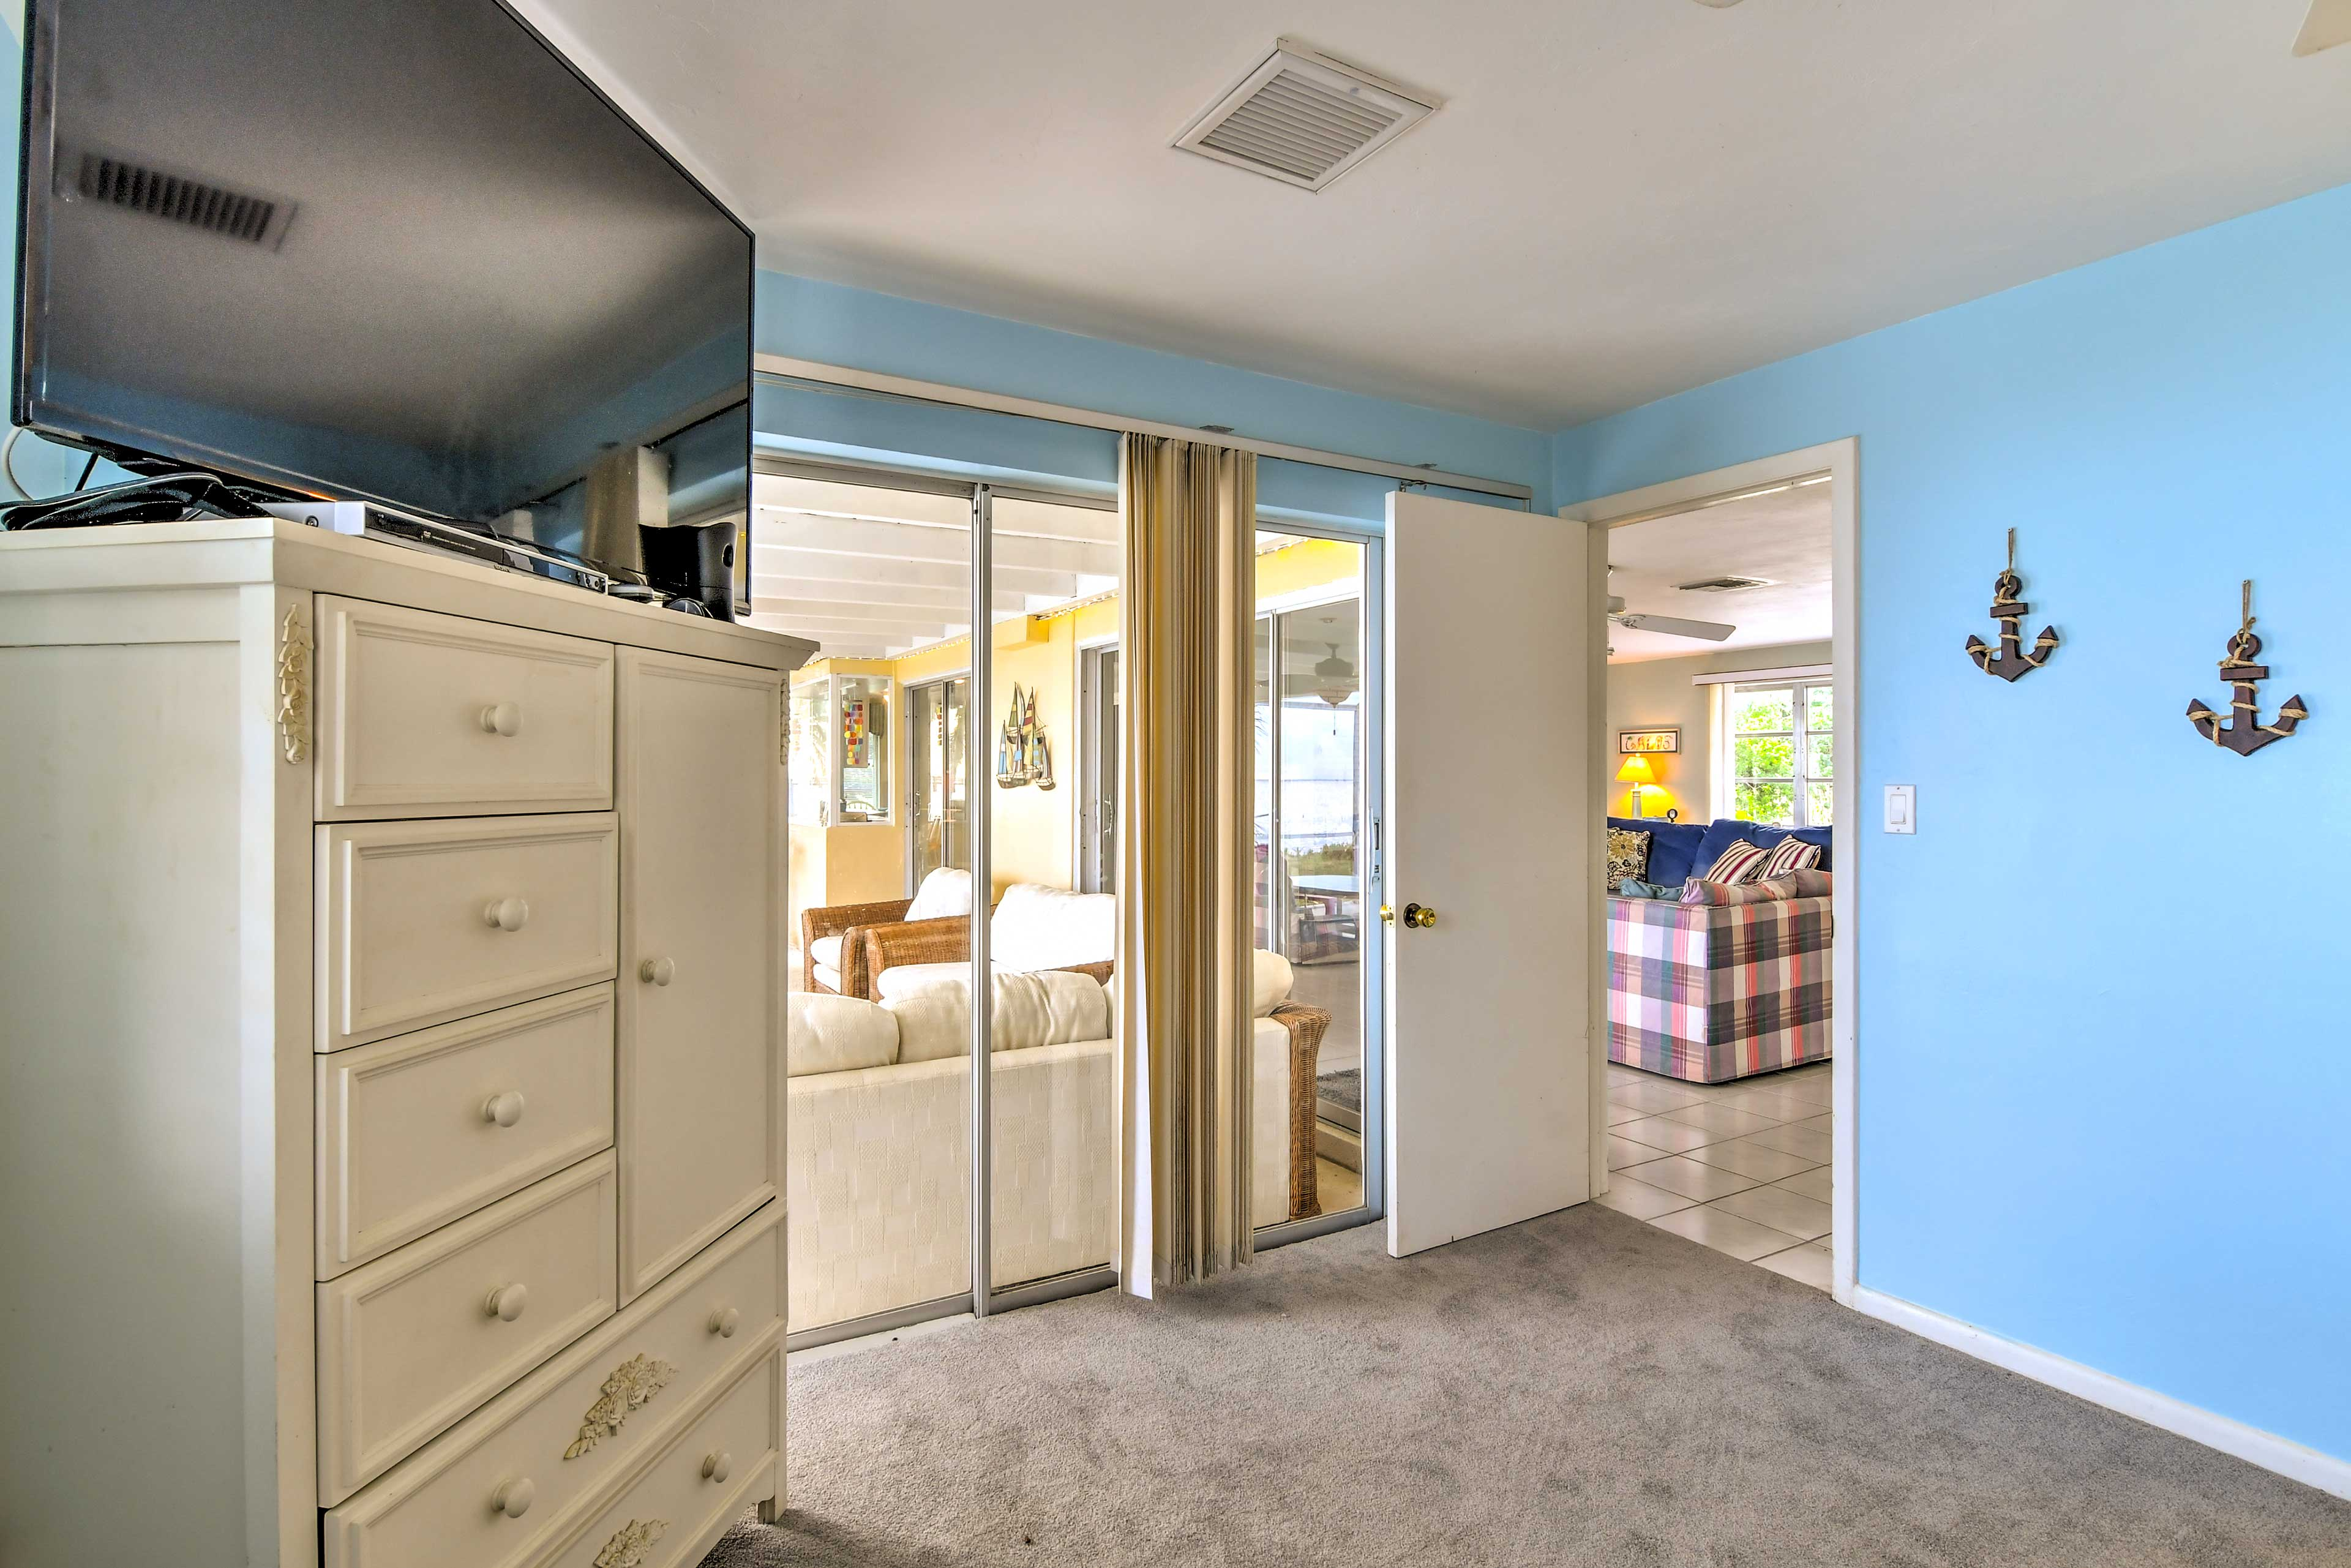 An additional flat-screen cable TV is provided in the master bedroom.